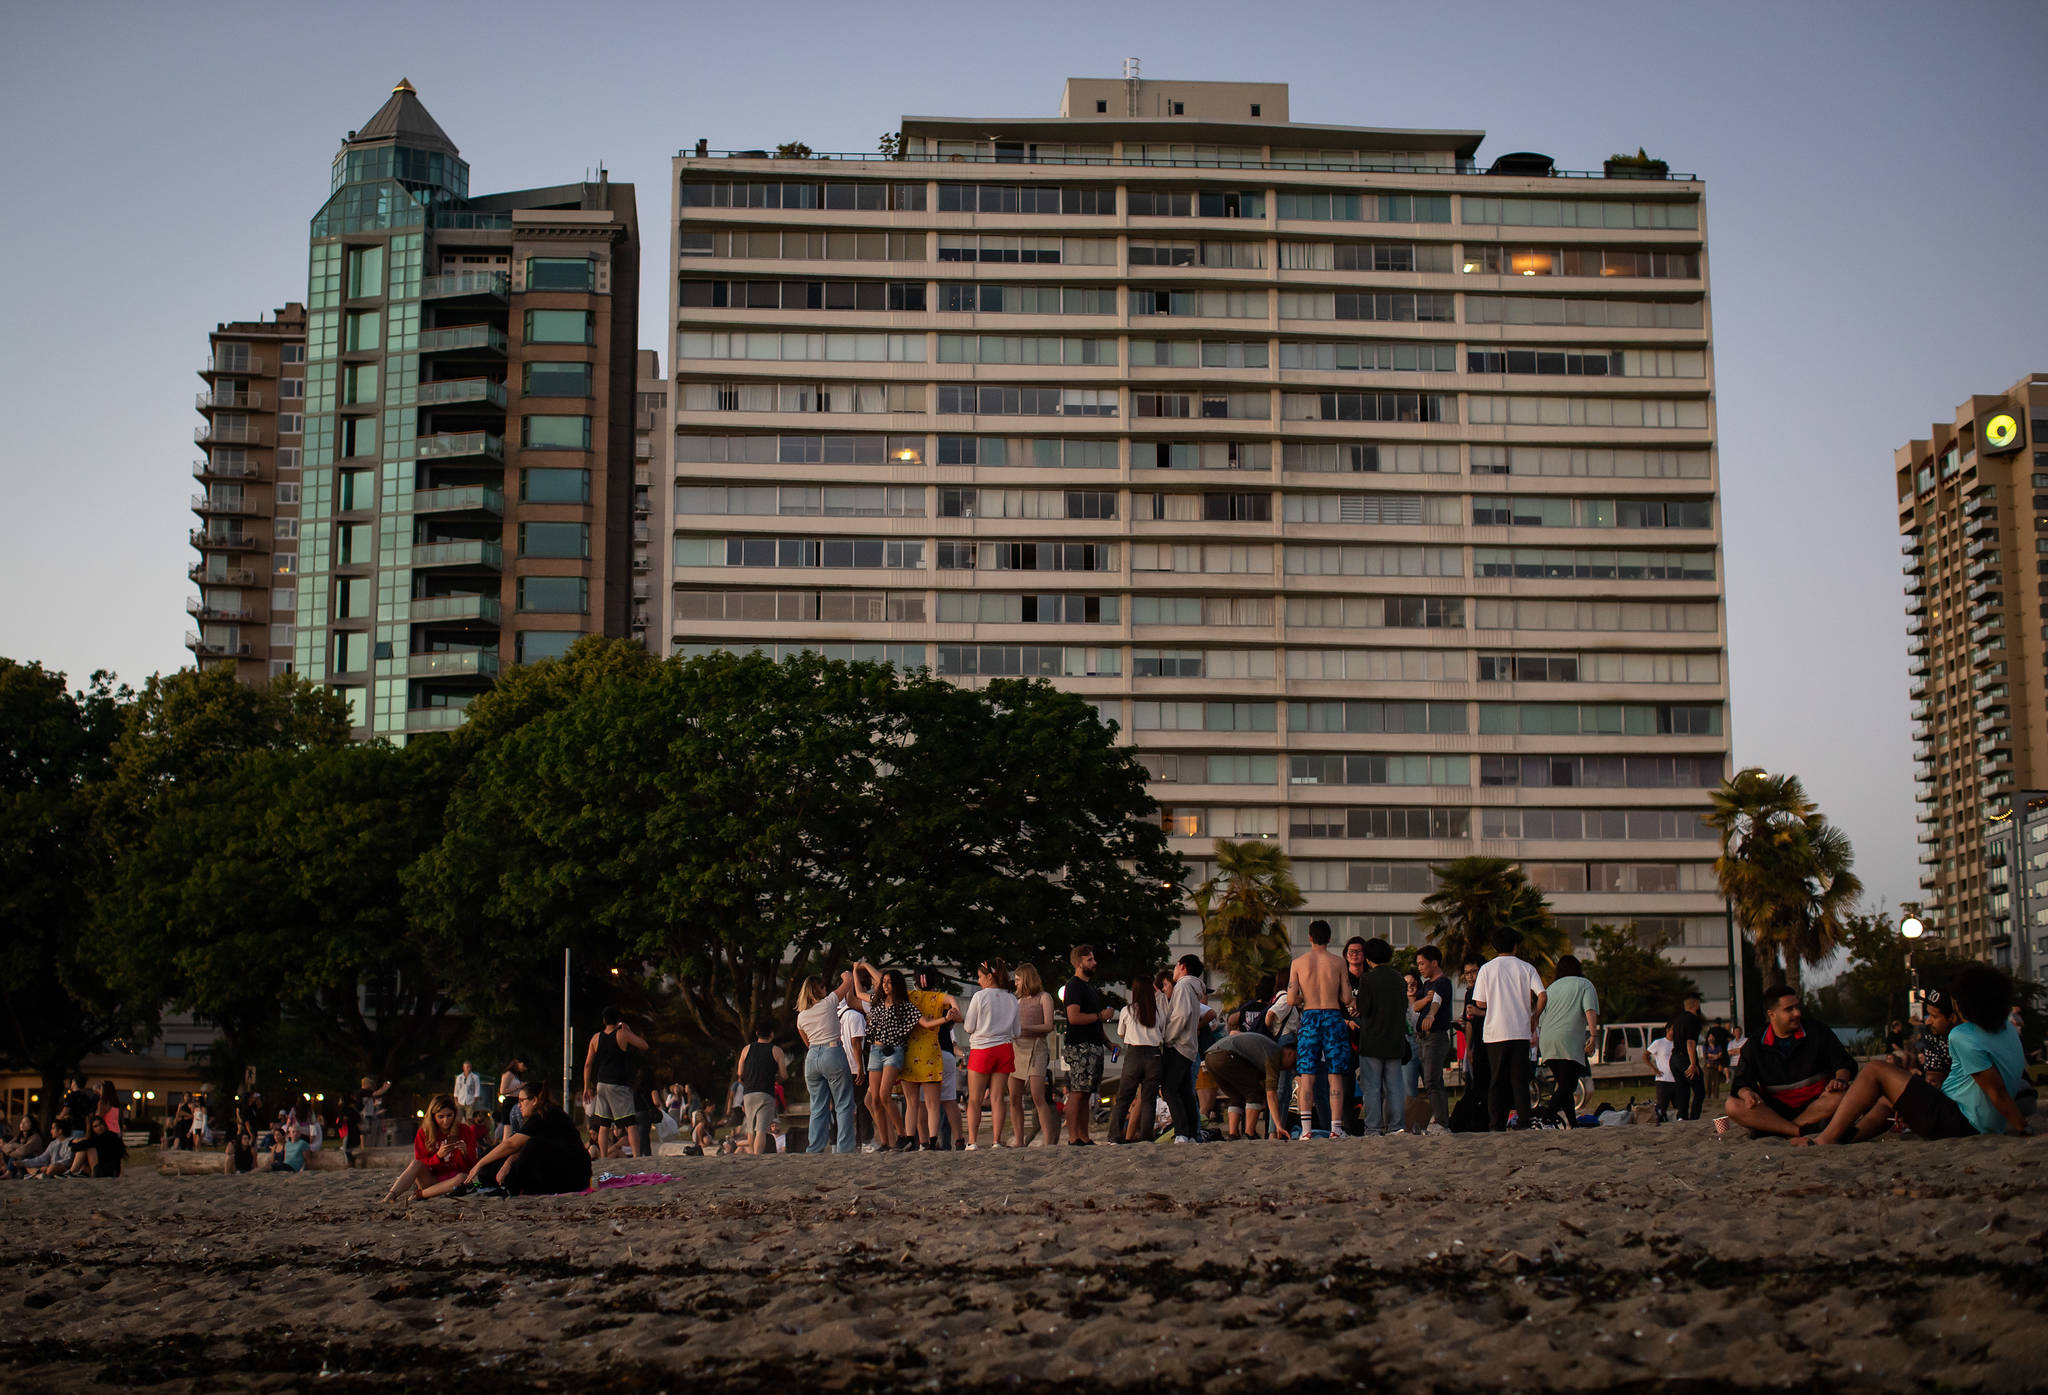 People dance and gather at English Bay Beach amidst a heat wave, in Vancouver, B.C., on Monday, June 21, 2021. THE CANADIAN PRESS/Darryl Dyck